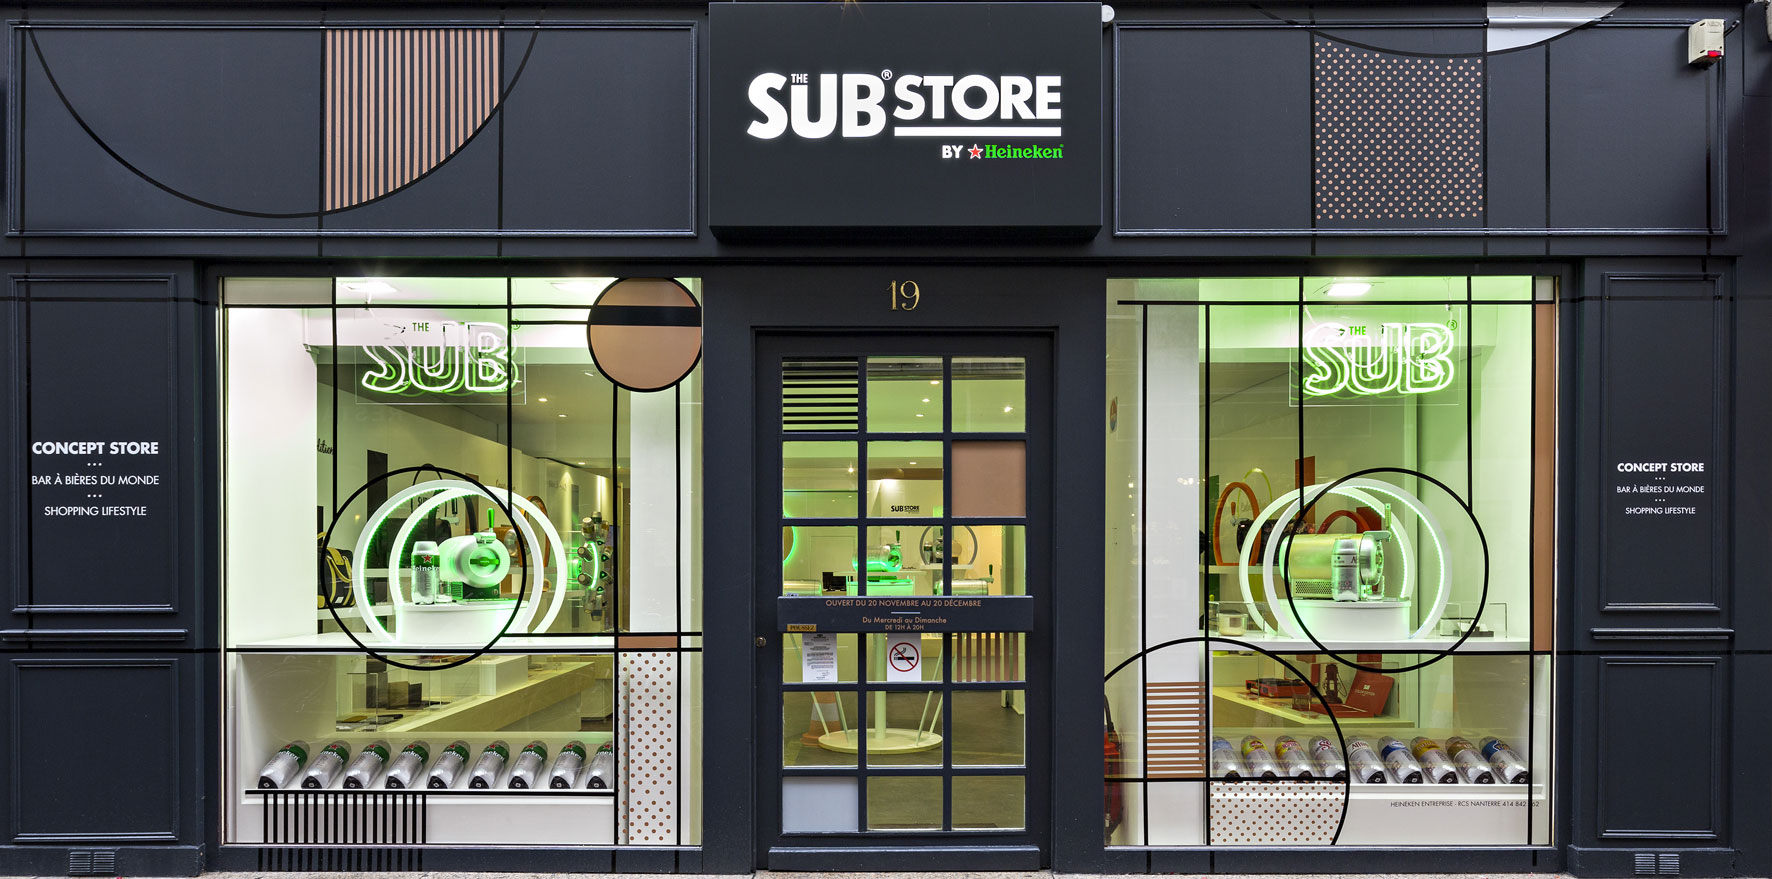 The-Substore-by-Heineken